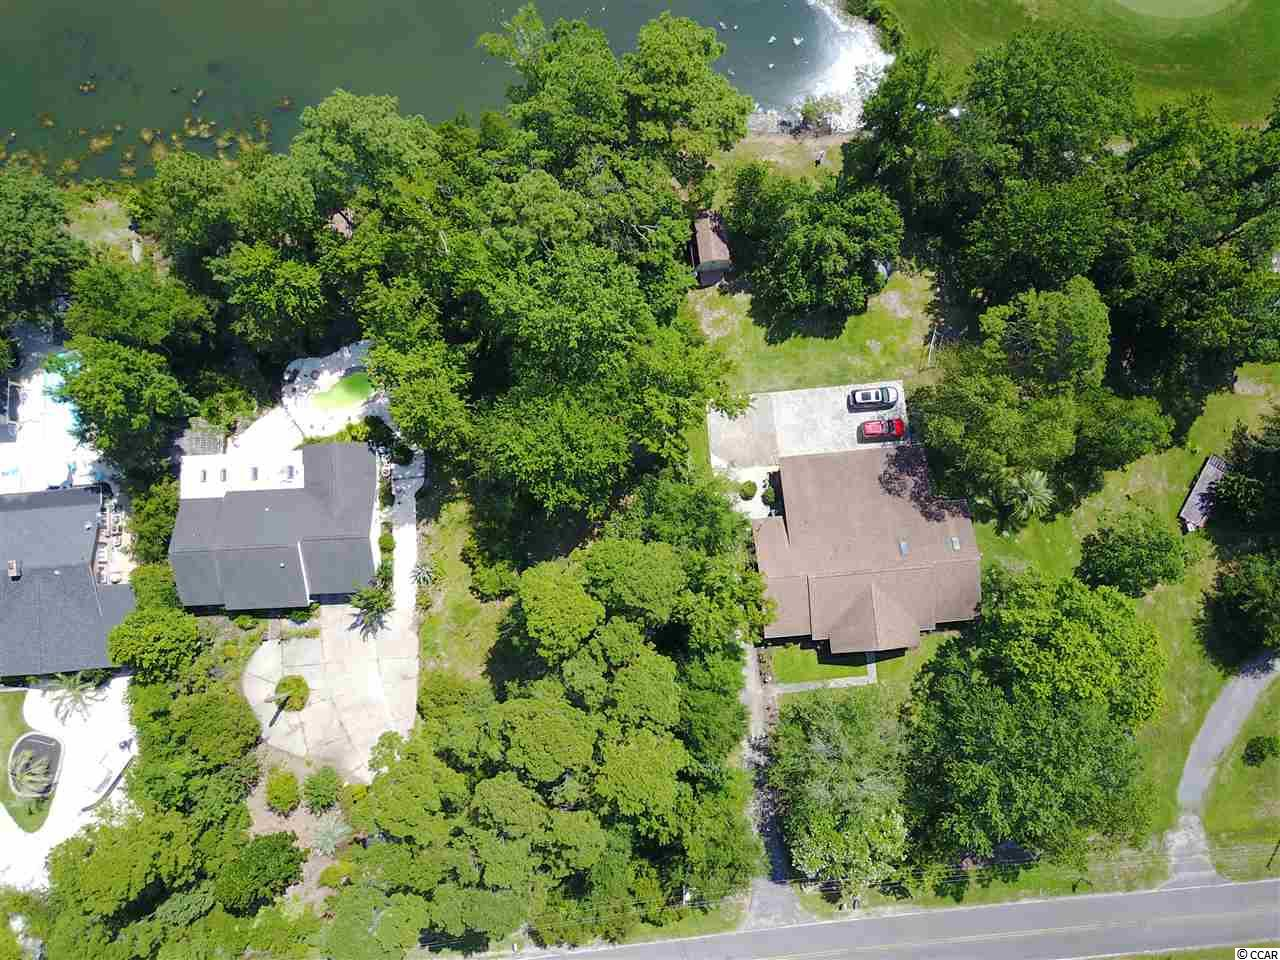 Fantastic location to build your home! This beautiful, nearly half acre lot is on a quiet street in the Hagley Estates community and backs up to a gorgeous view of water and the Founders Club golf course. And, no HOA fees! The boat landing to the ICW/Waccamaw River is just a hop, skip, and a jump to the West, and the beautiful Pawleys Island beaches are just minutes away to the East! Hagley is close to all that Pawleys Island has to offer: locally owned restaurants, specialty boutiques, and lots of golf courses! Come build your dream home and enjoy coastal living!